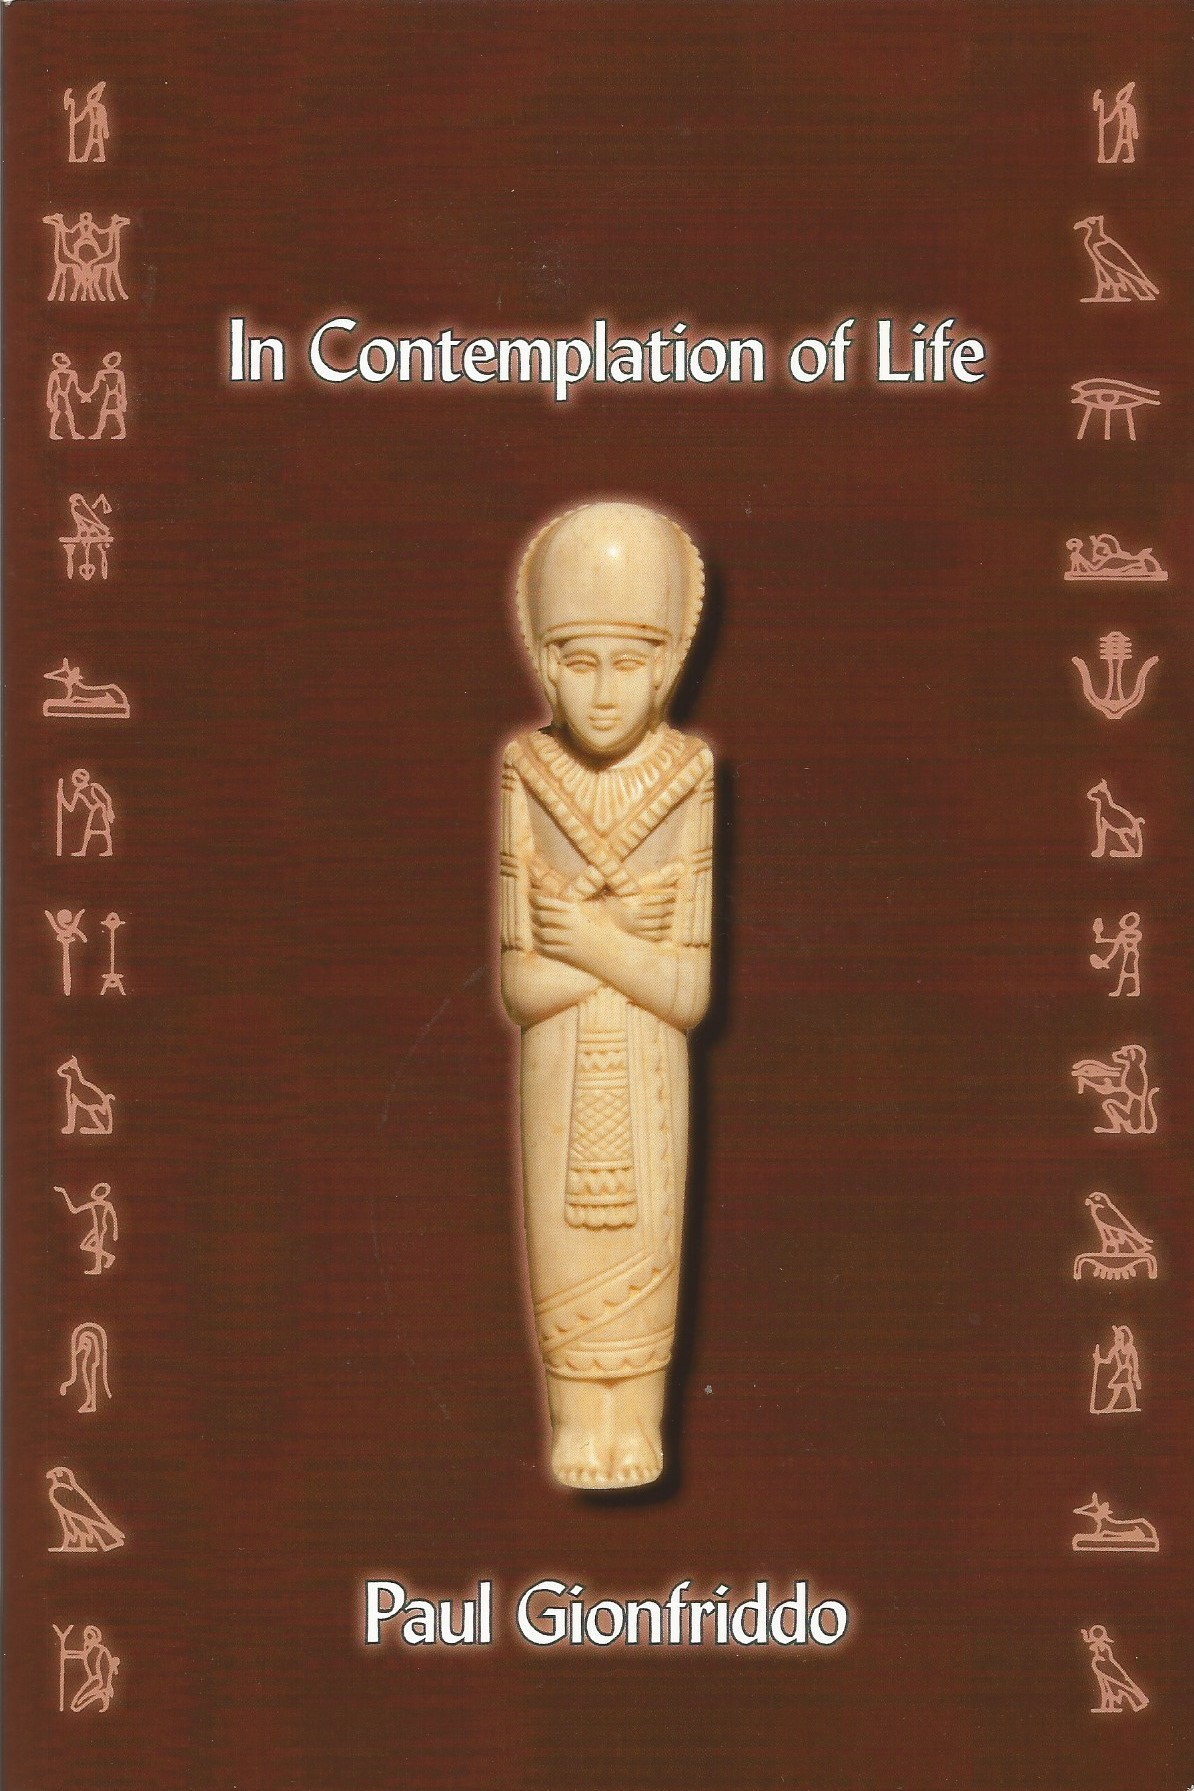 In Contemplation of Life / Paul Gionfriddo